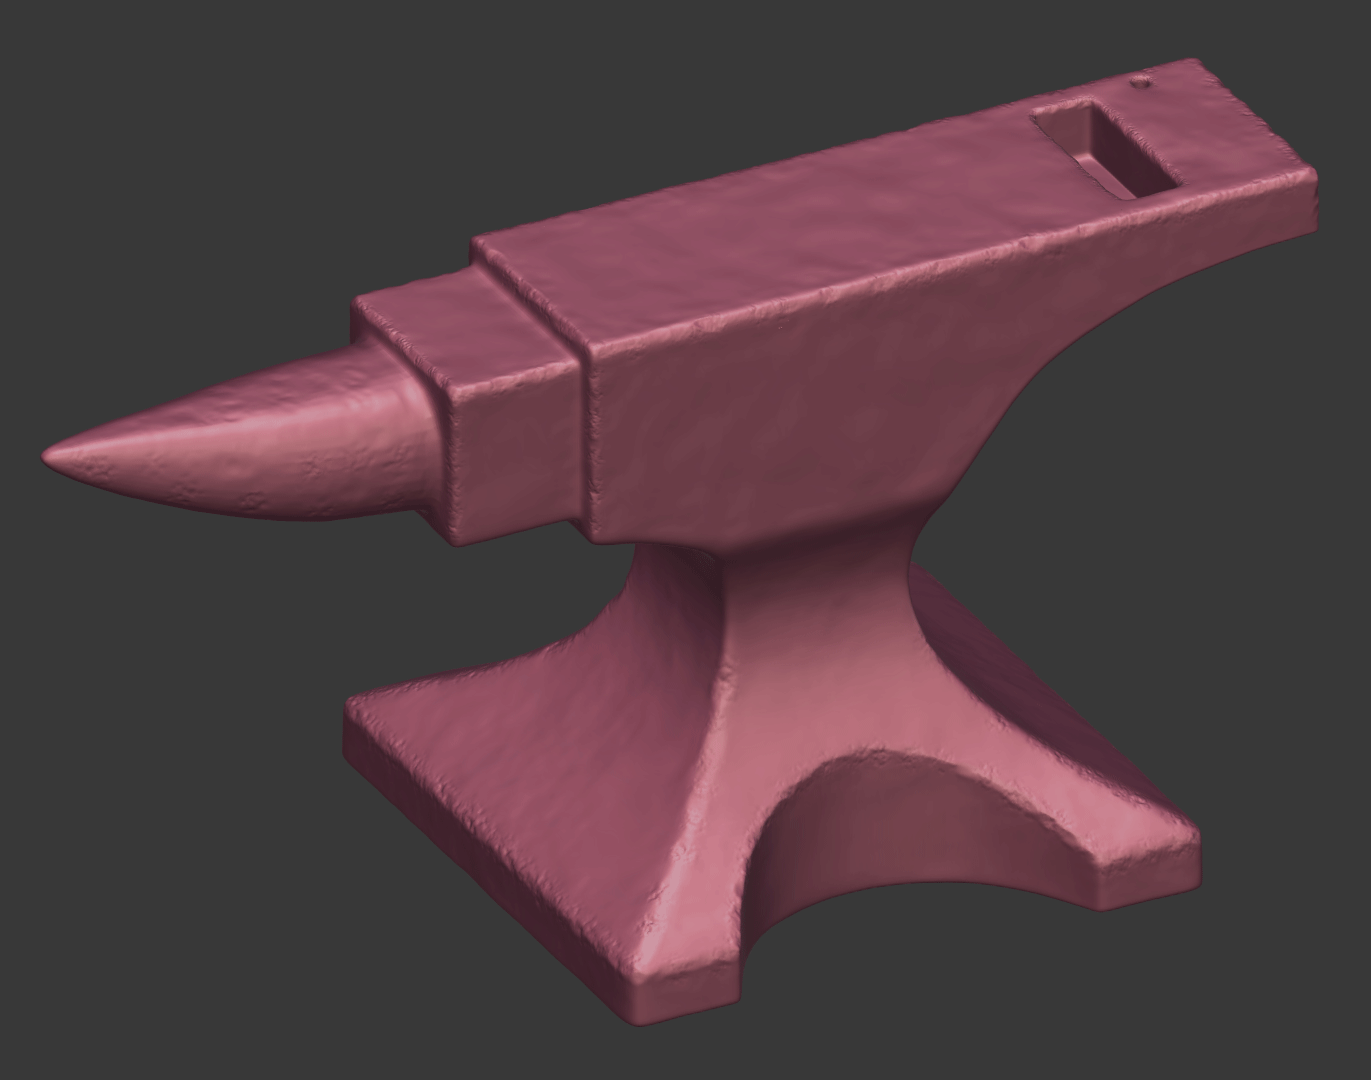 anvil-sculpt